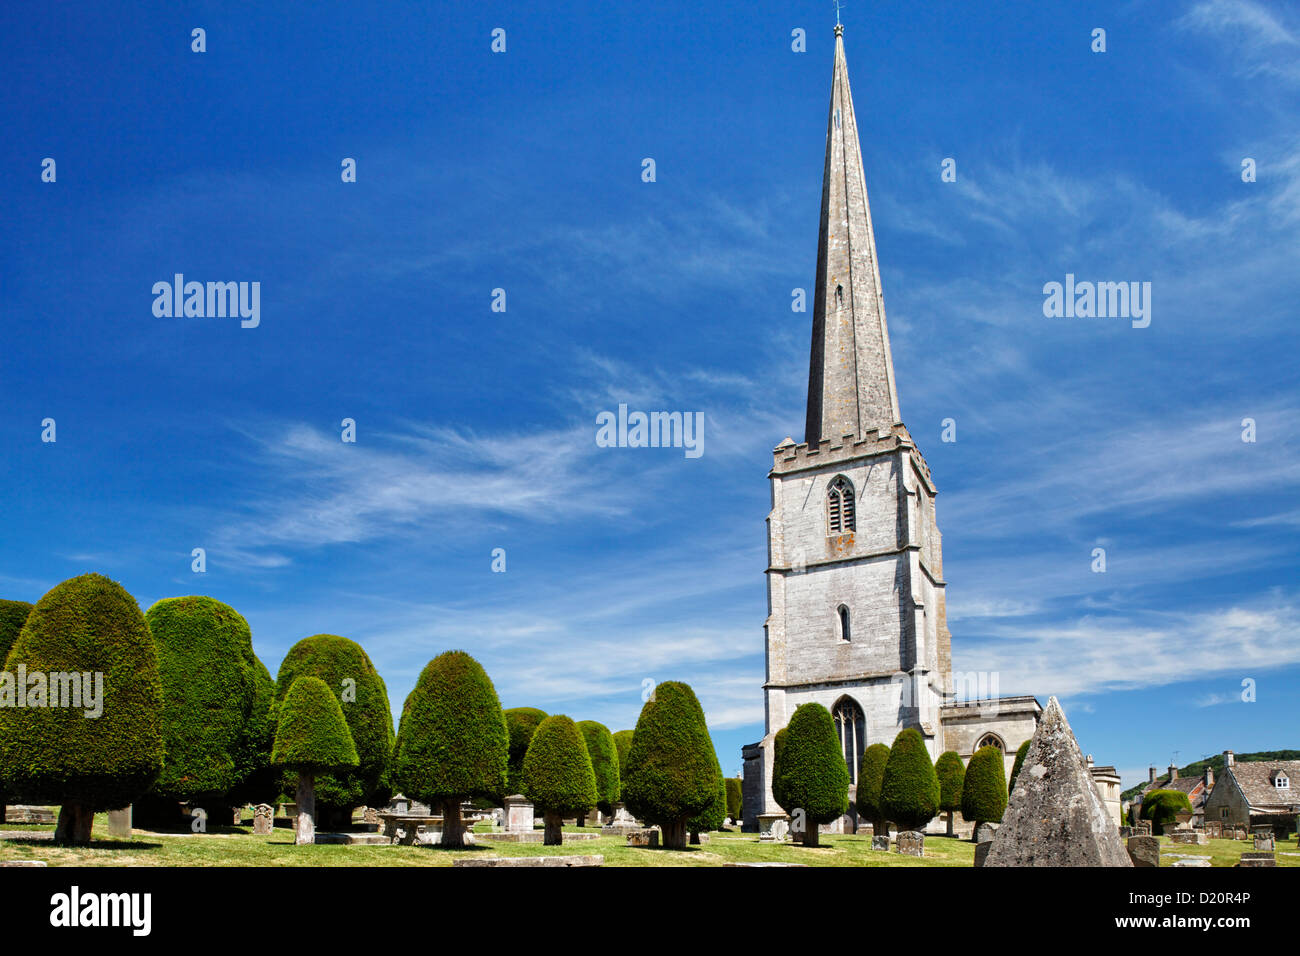 Graveyard of St. Mary's church, Painswick, Gloucestershire, Cotswolds, England, Great Britain, Europe - Stock Image